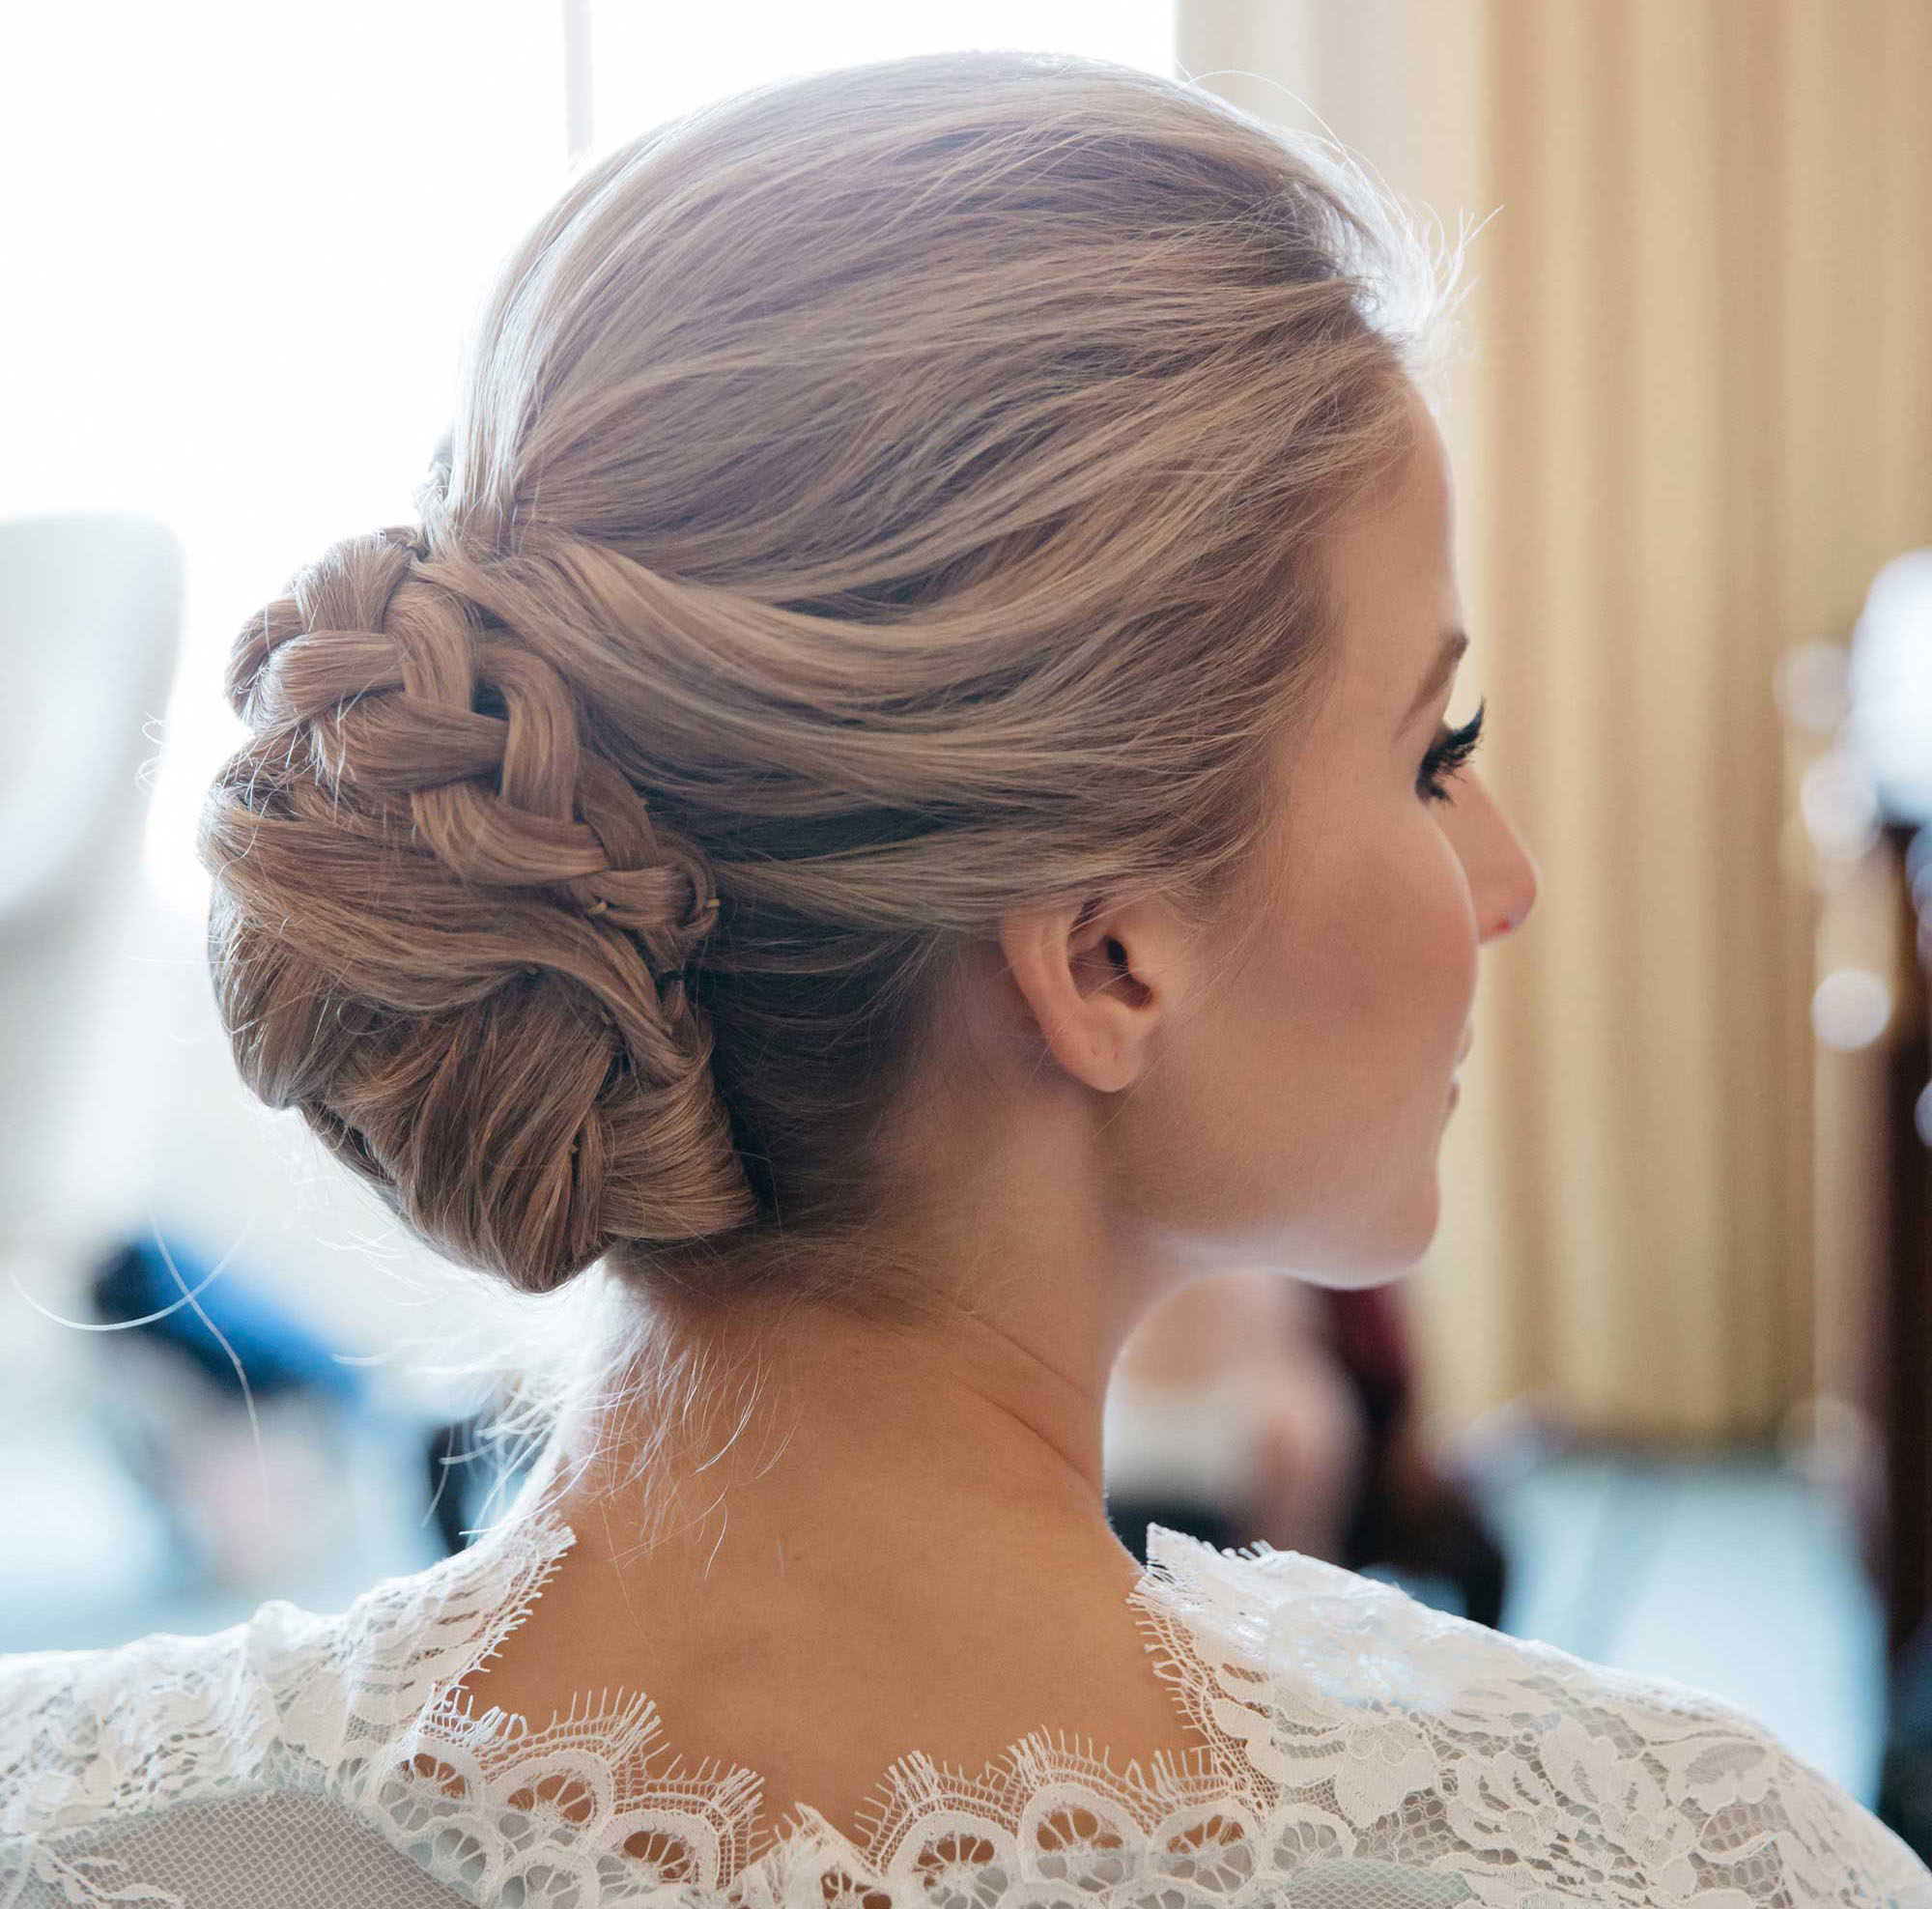 Sensational Braided Hairstyles 5 Ideas For Your Wedding Look Inside Weddings Short Hairstyles Gunalazisus